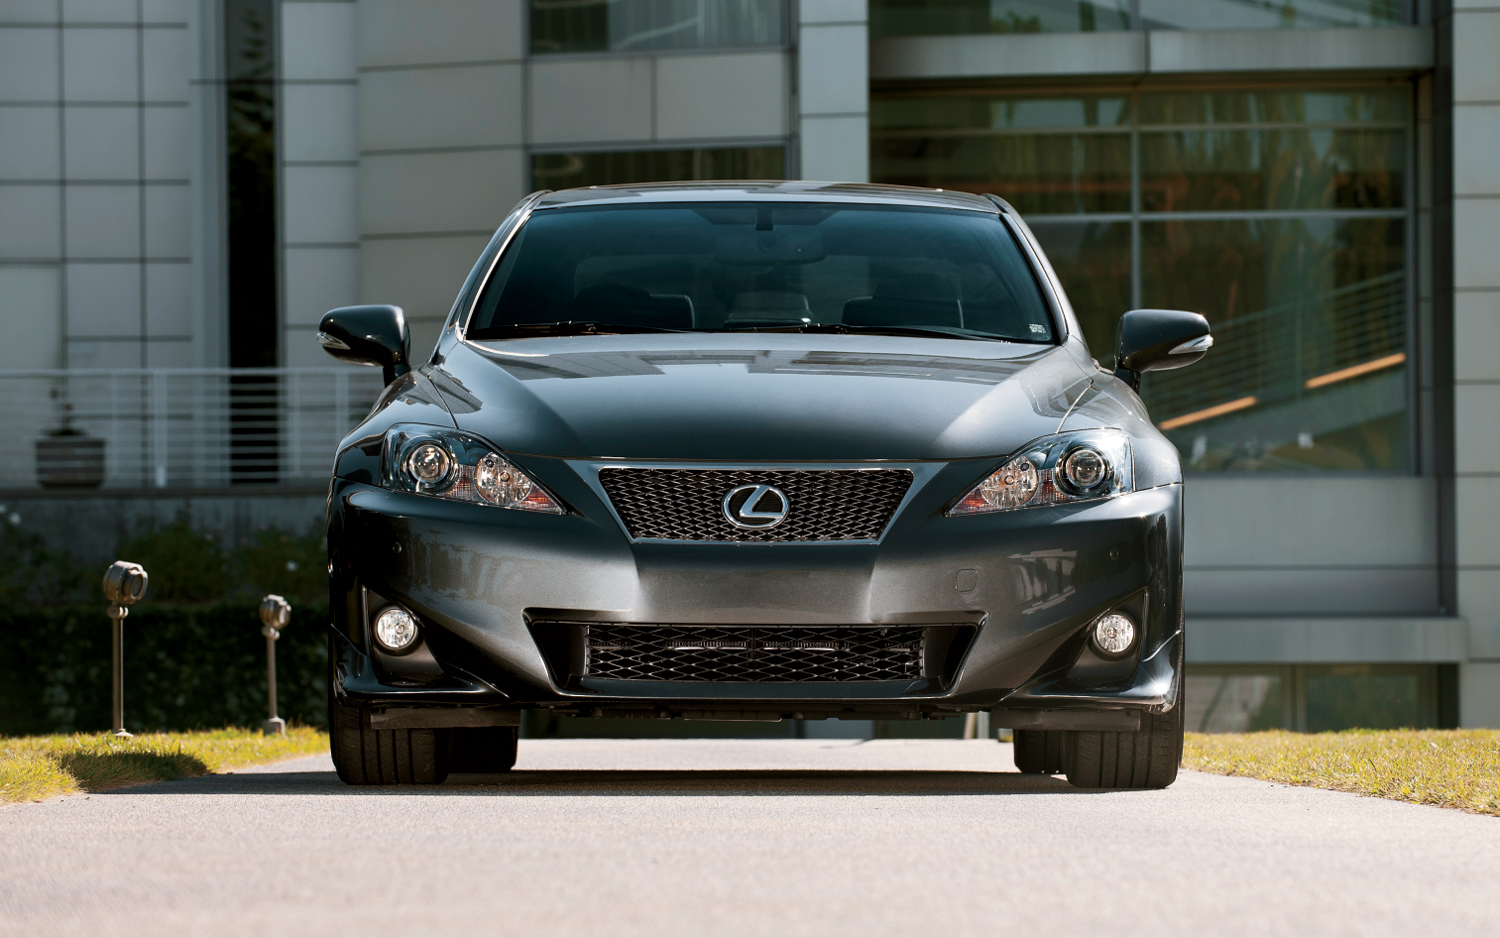 Lexus IS 250 #5